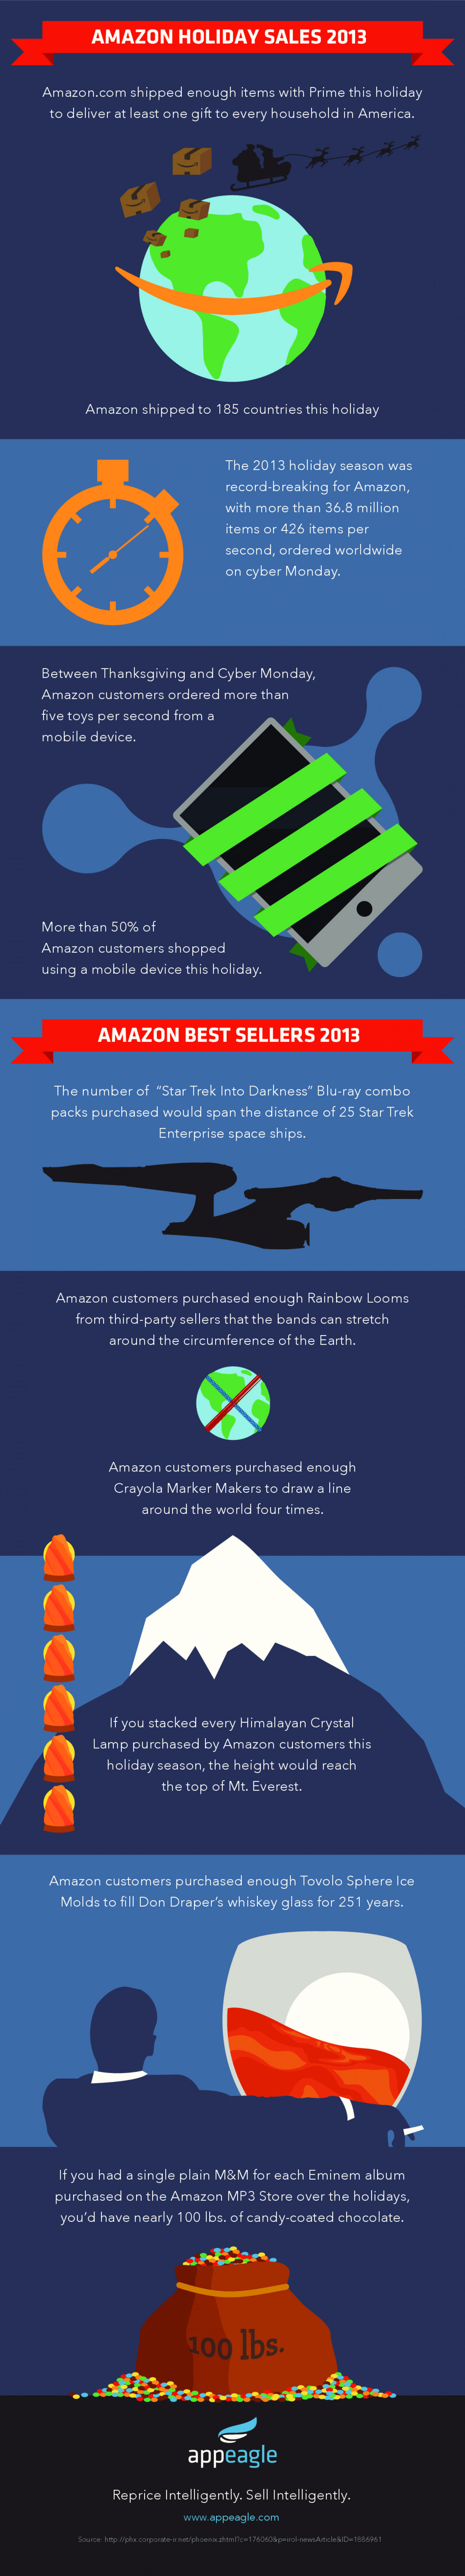 Amazon 2013 Holiday Fun Facts by Appeagle Infographic